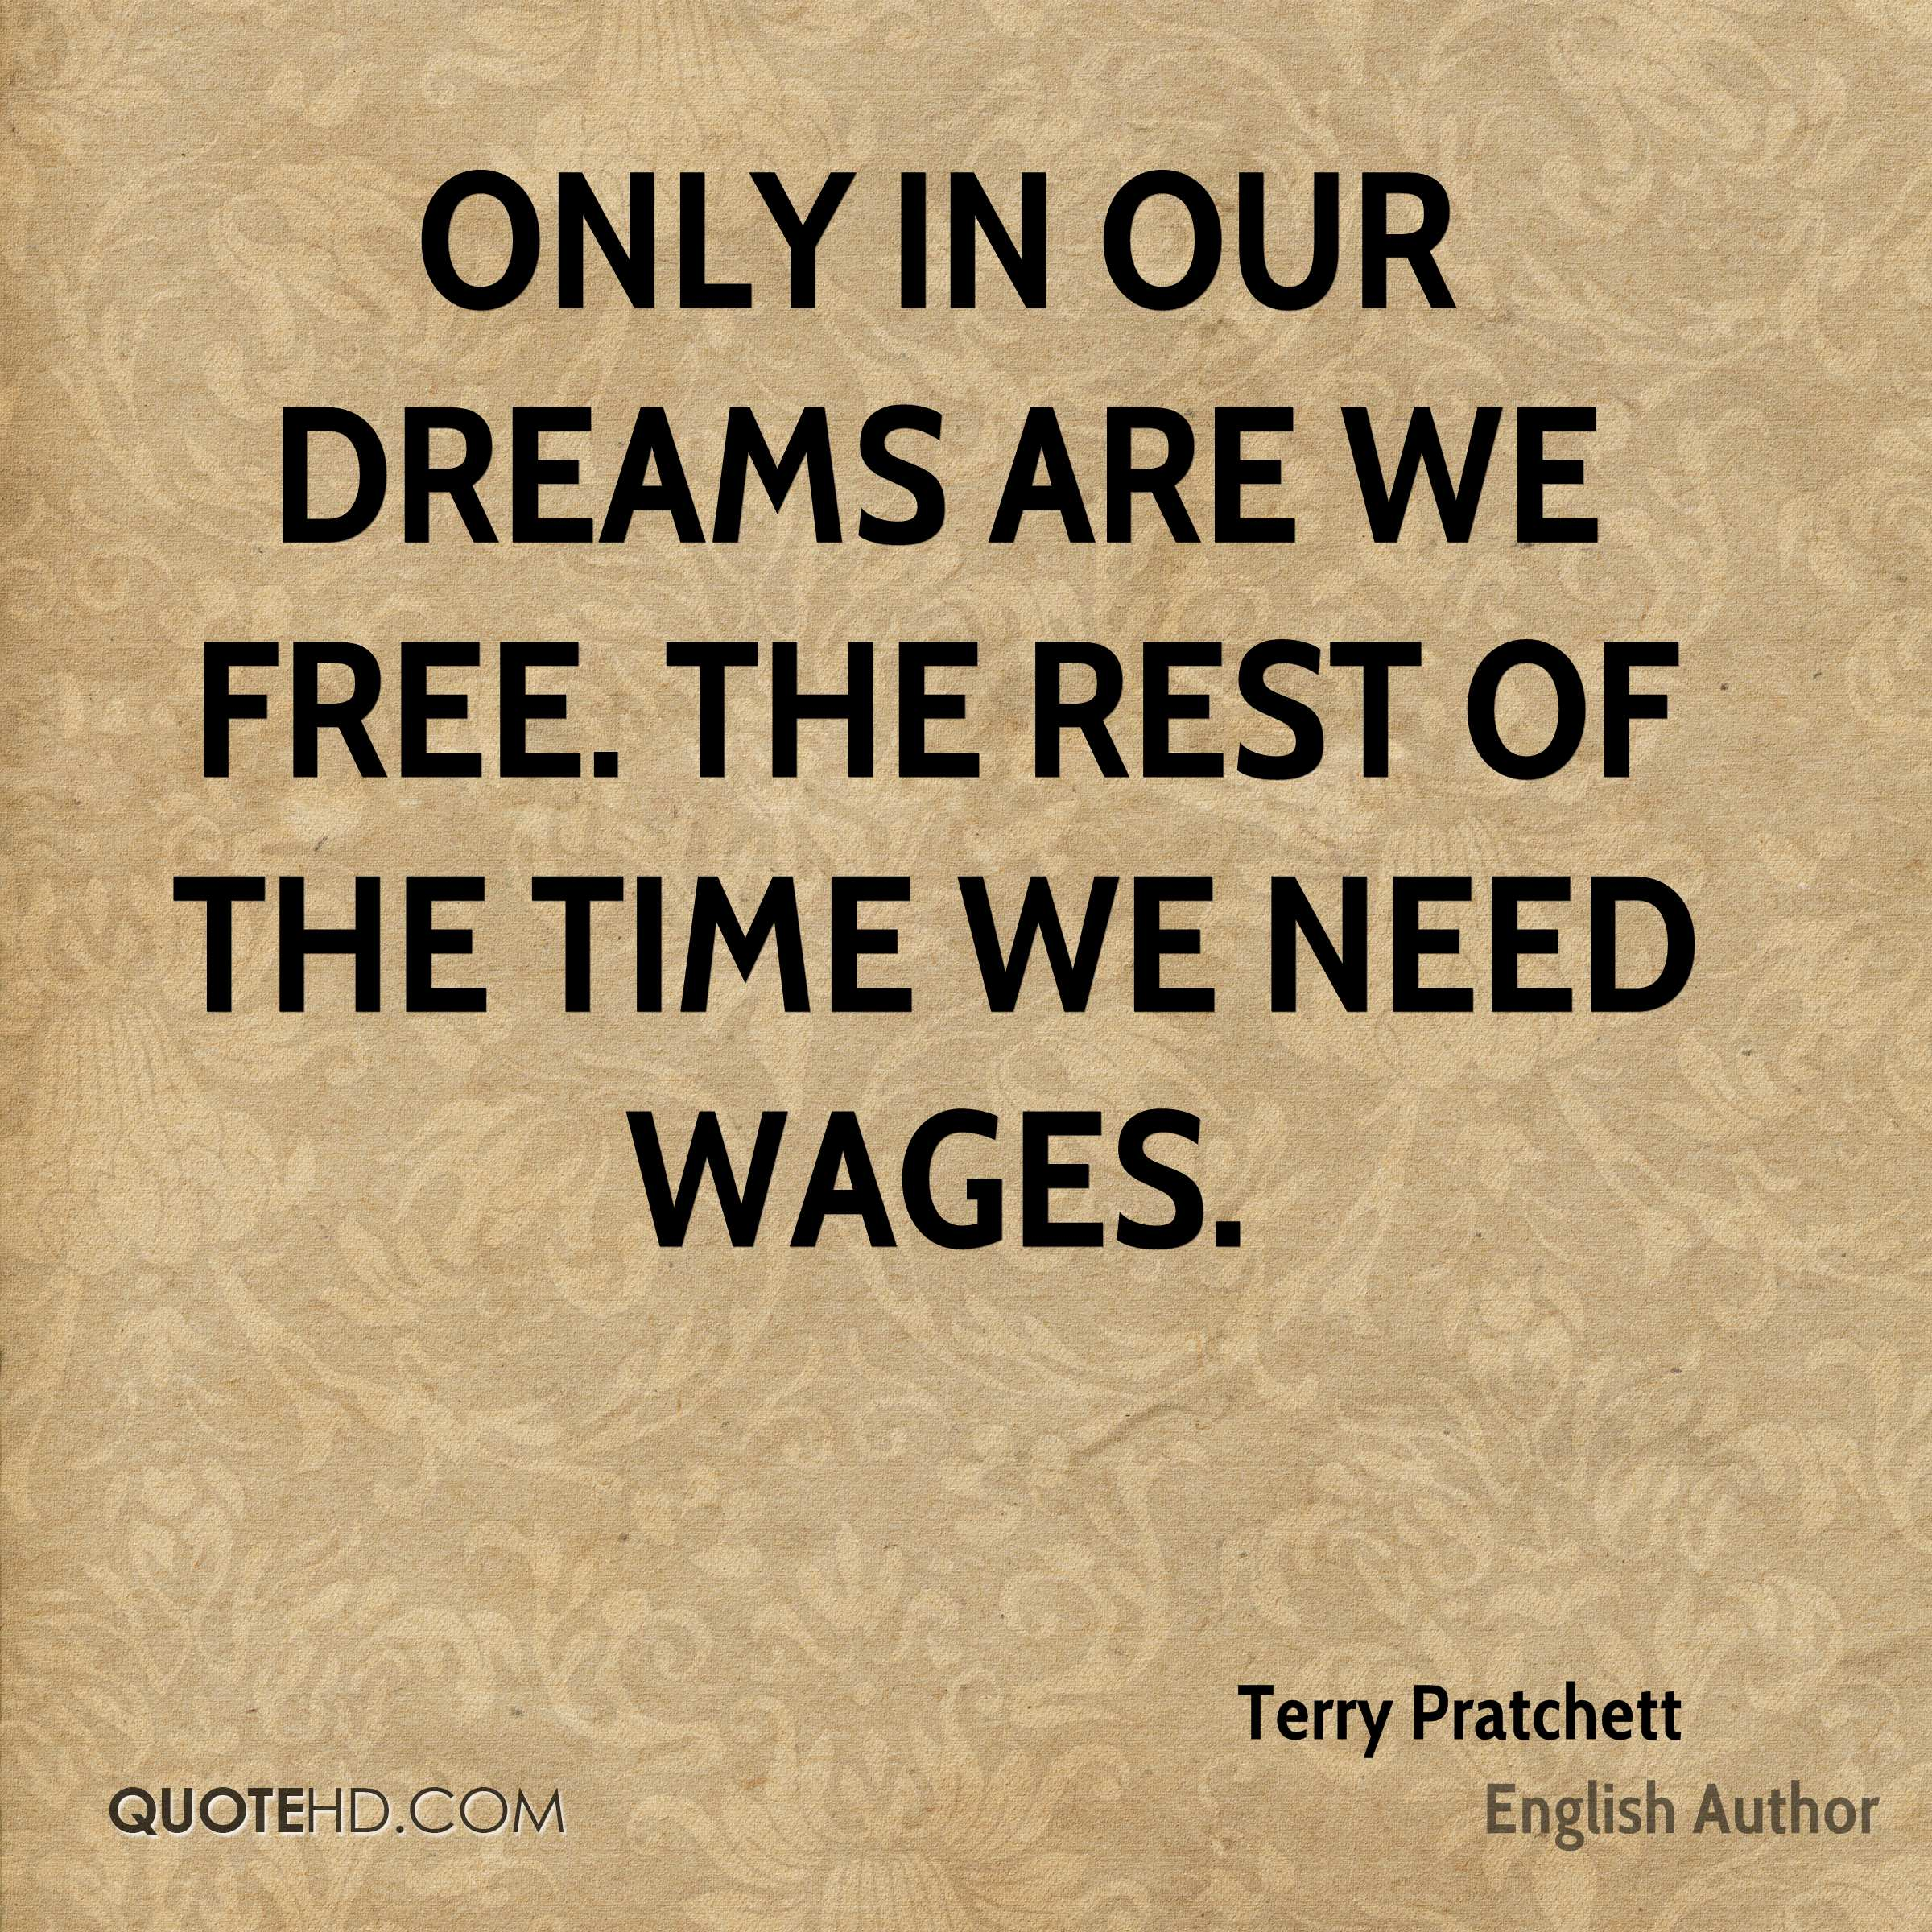 Only in our dreams are we free. The rest of the time we need wages.